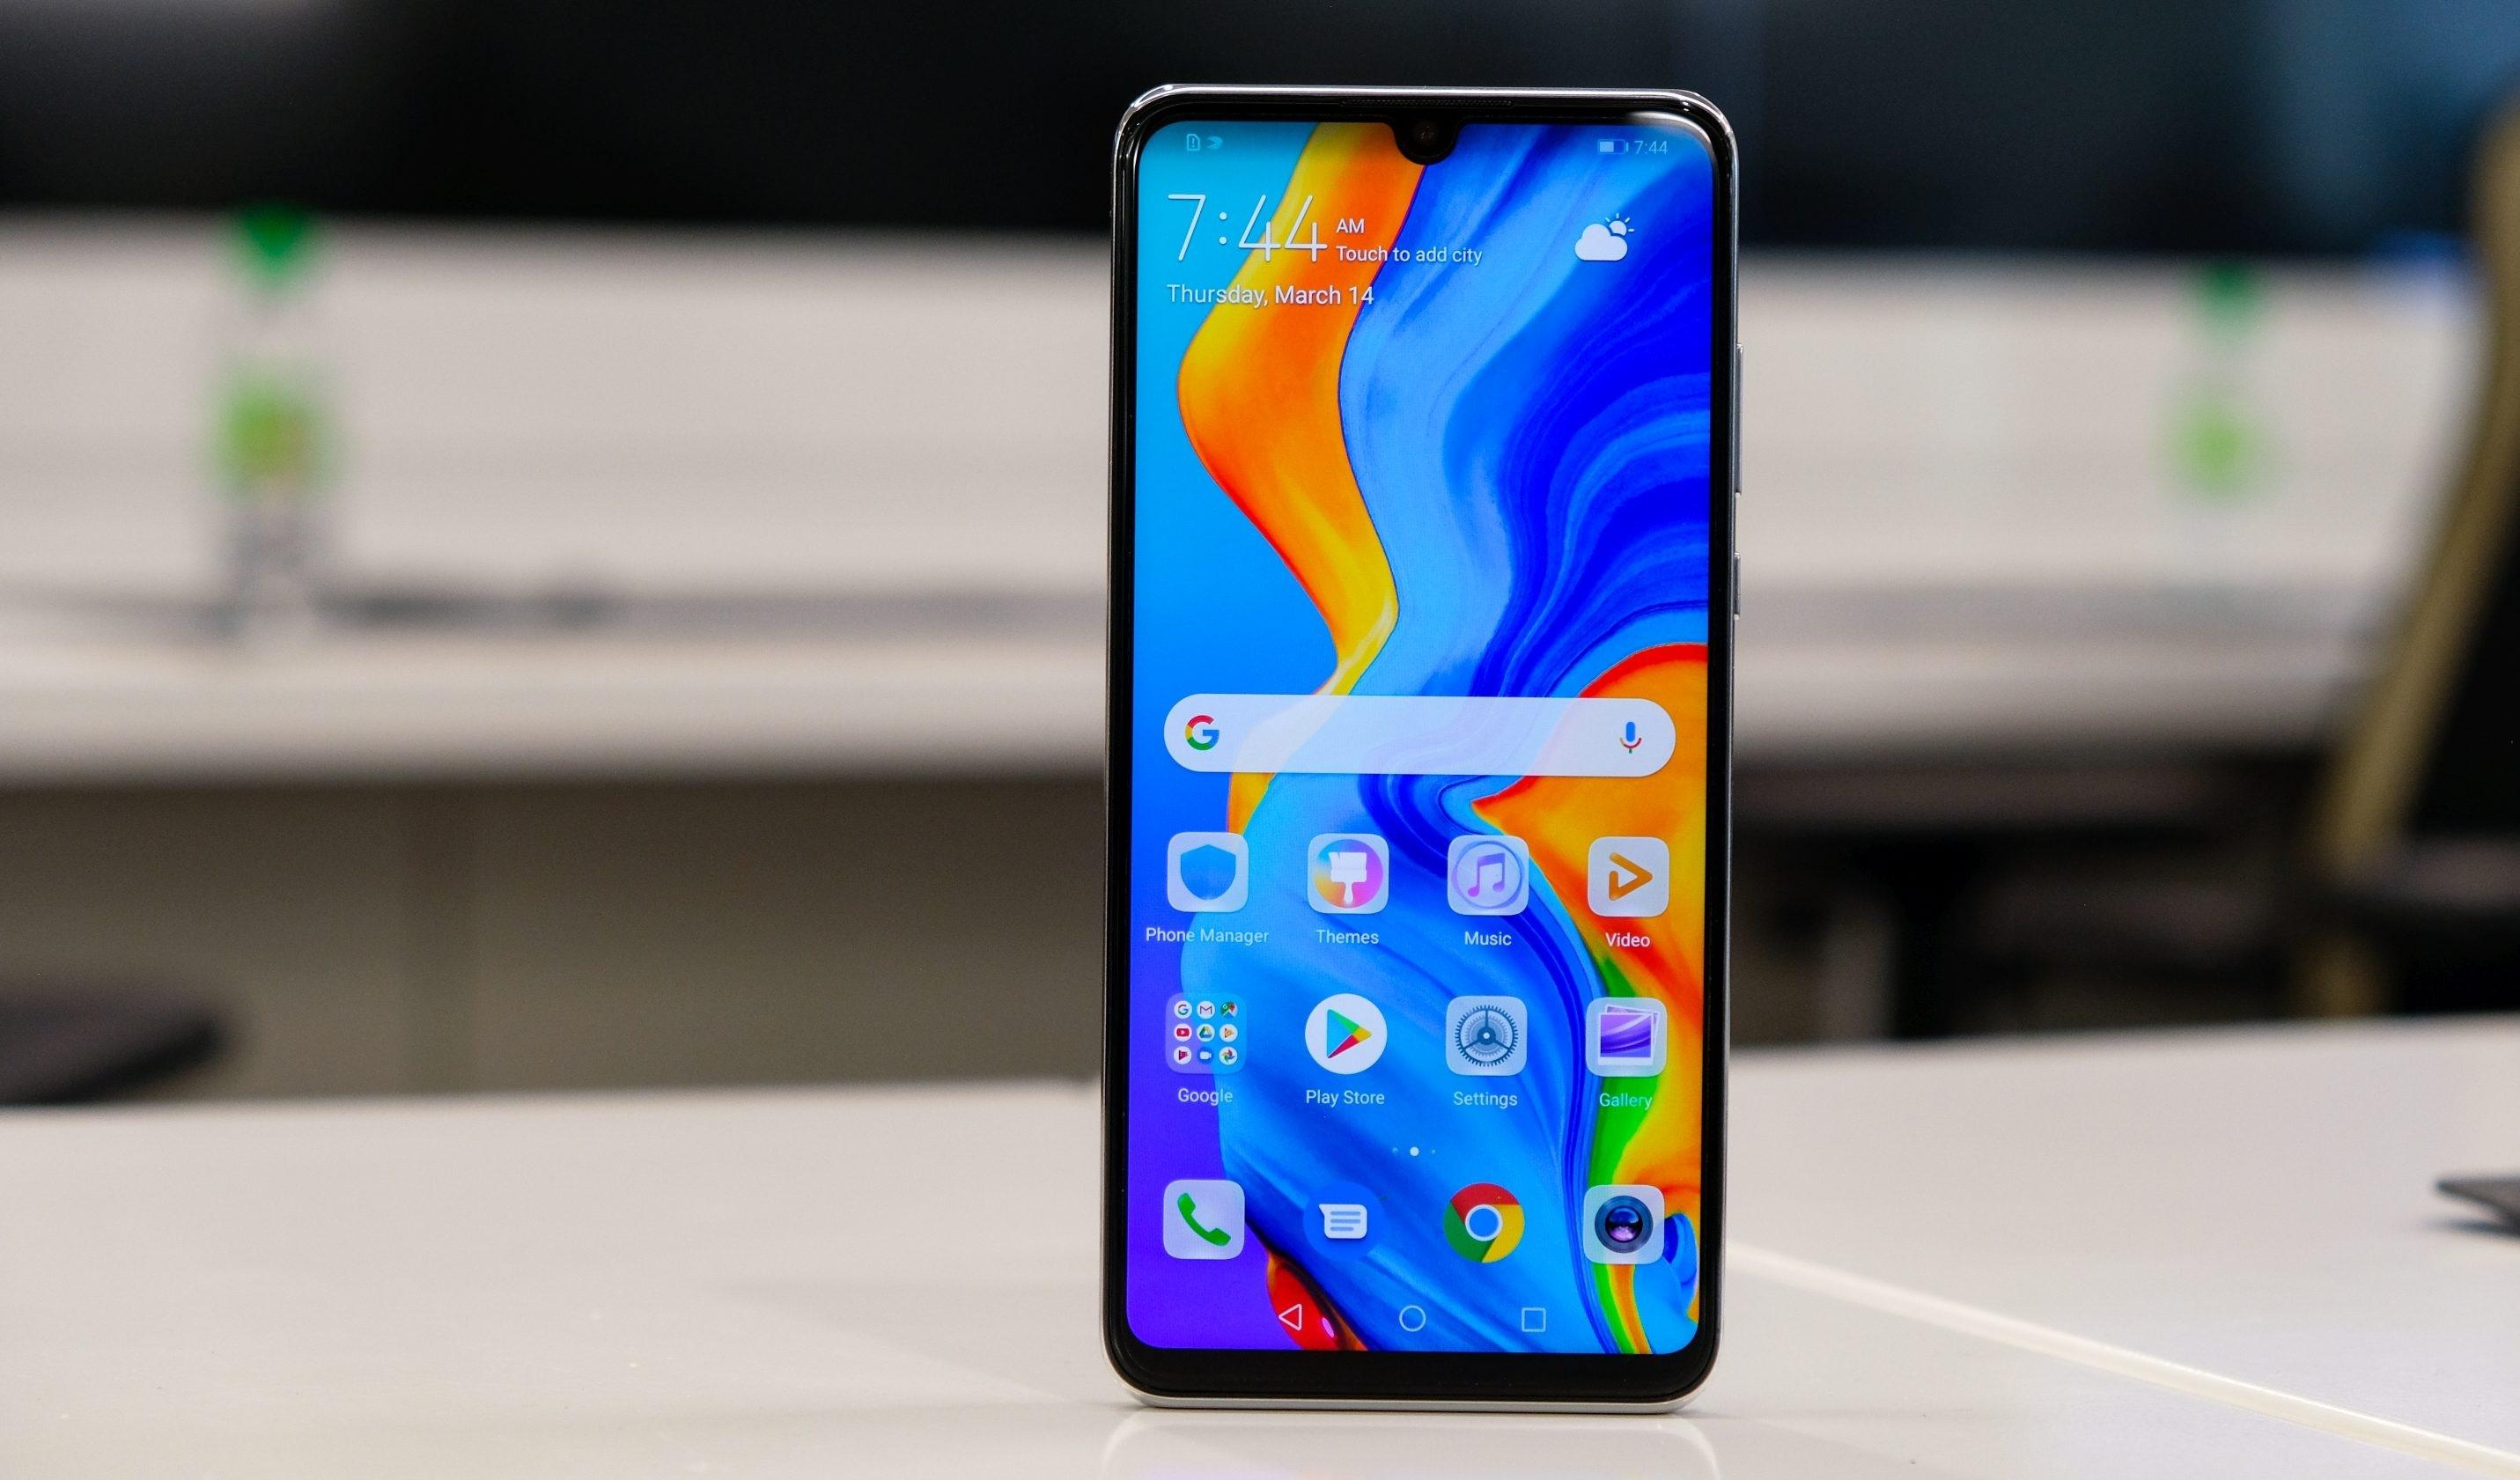 Huawei Nova 4e launched with Triple Rear cameras and 32MP selfie camera.